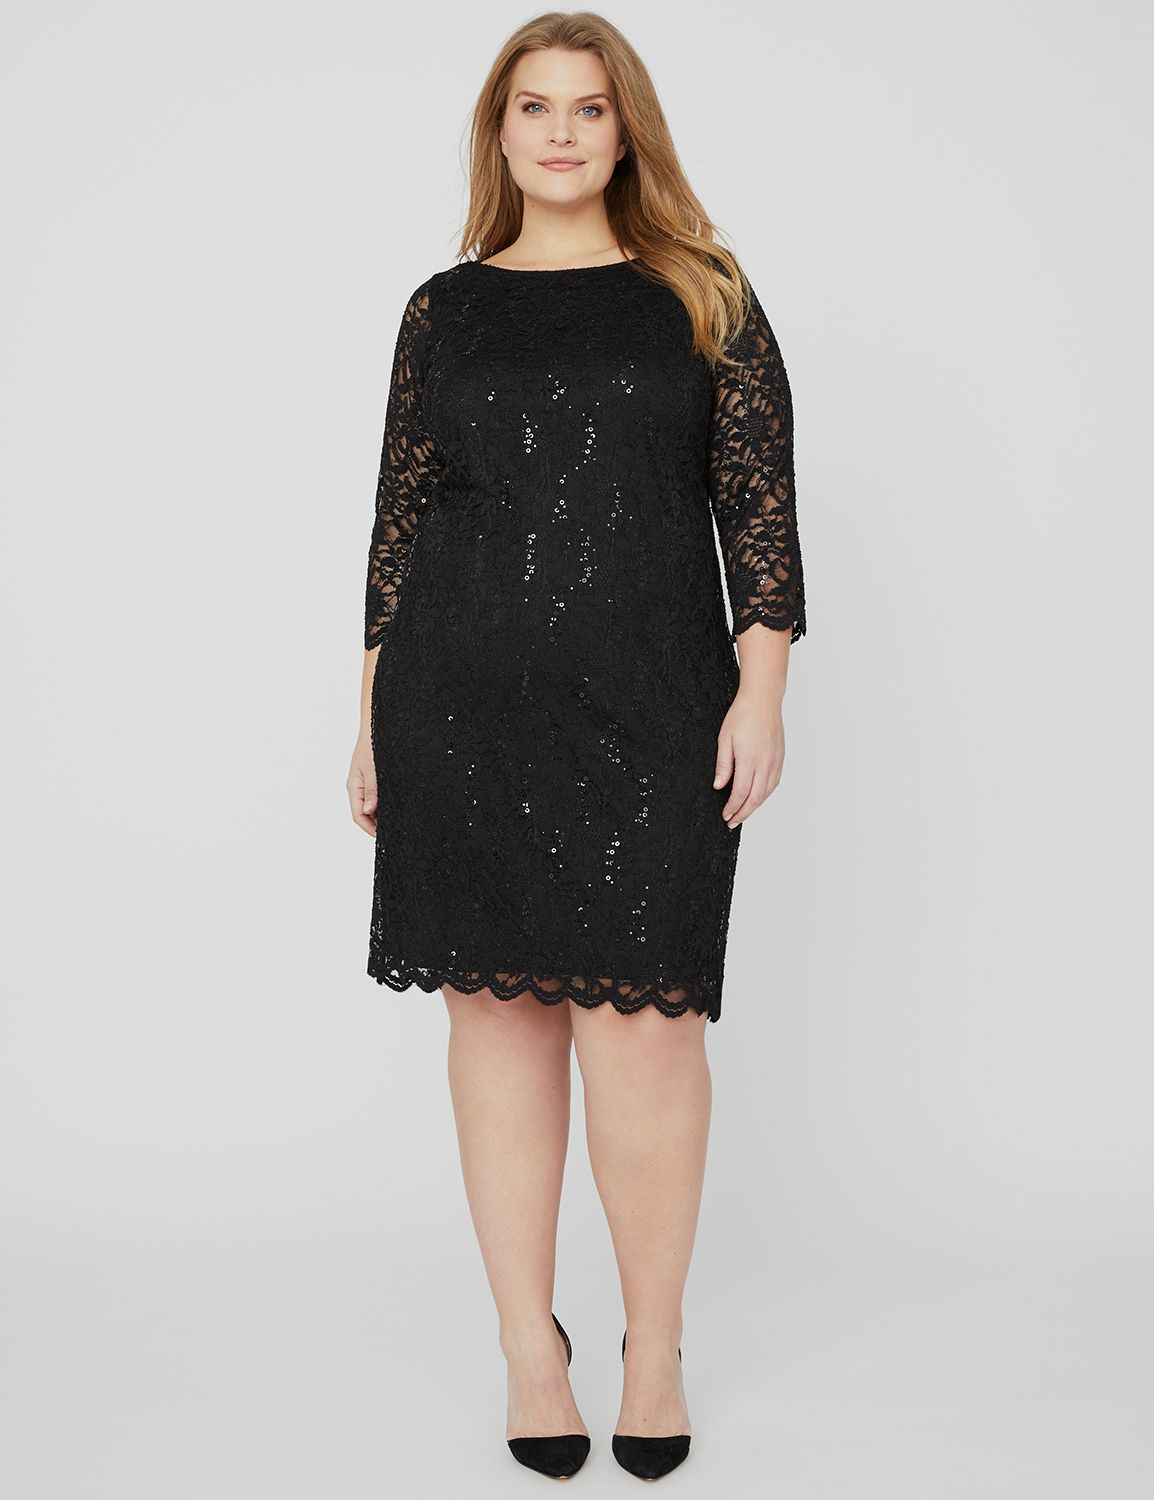 Sequin Lace Shift Dress 1093614 Lace Shift - #88922 MP-300107356